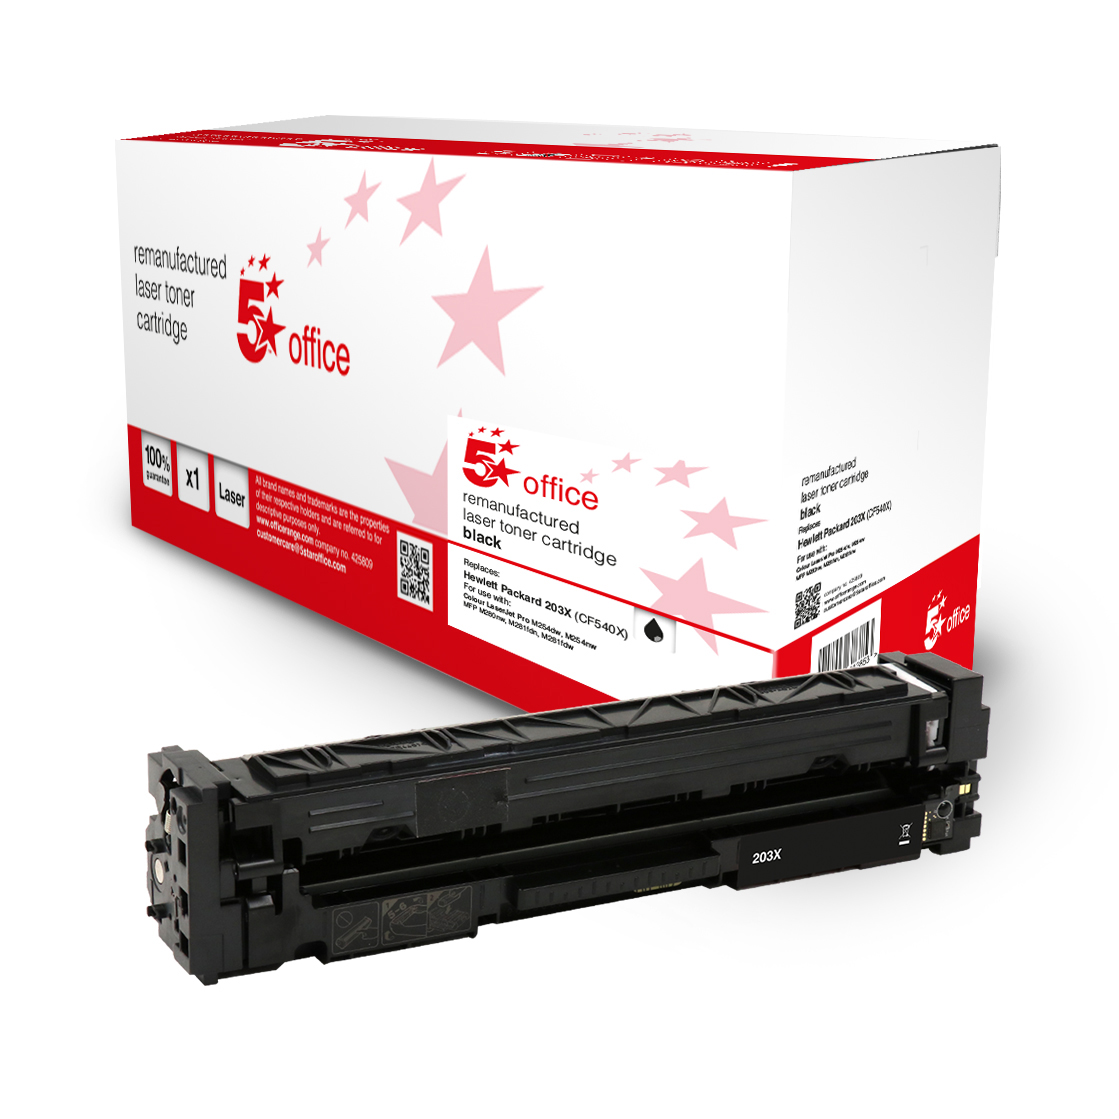 Laser Toner Cartridges 5 Star Office Remanufactured Toner Cartridge Page Life Black 3200pp HP 203X CF540X Alternative